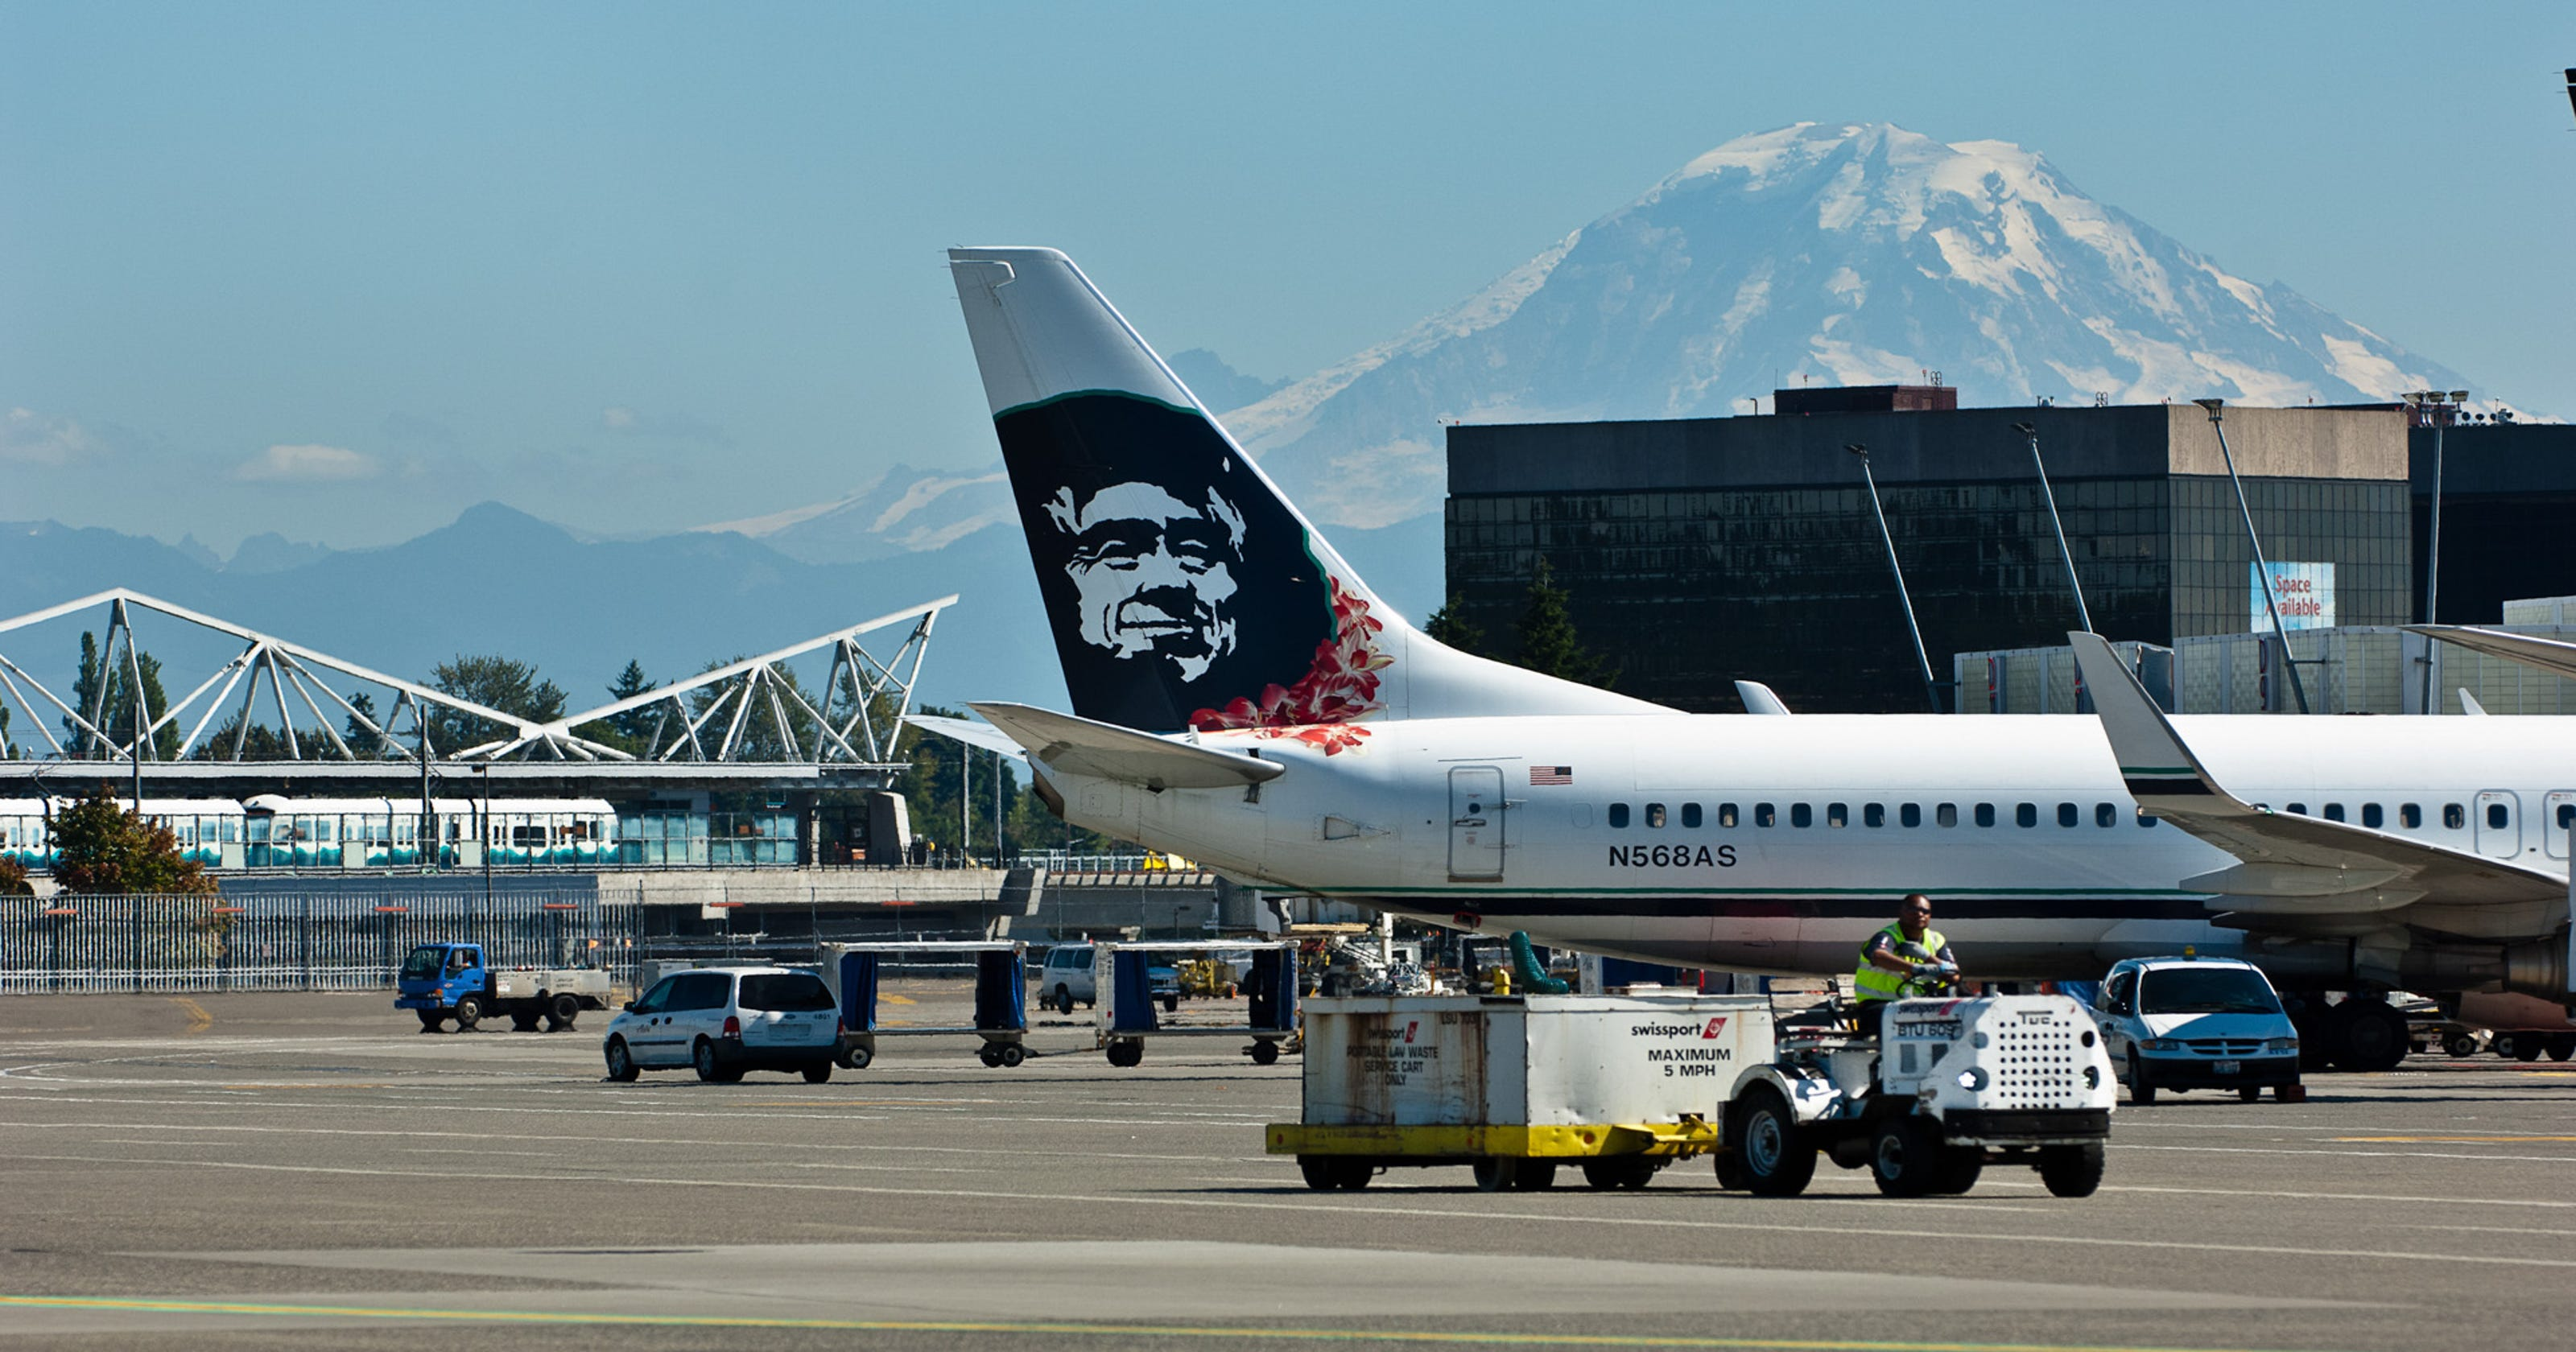 Scenes From Seattle Tacoma International Airport